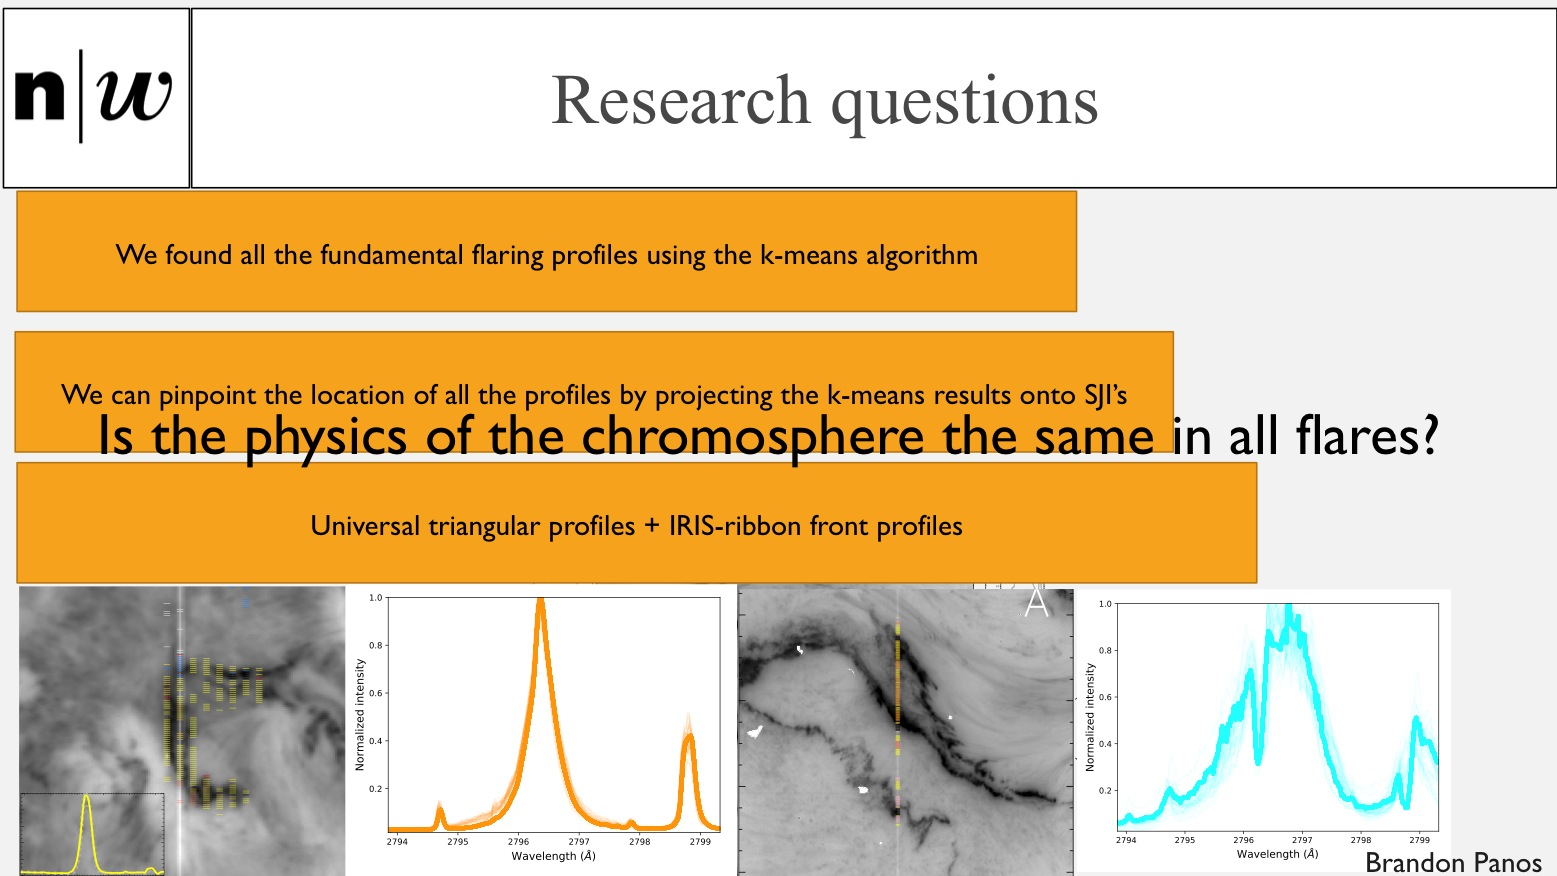 Research questions: Is the physics of the chromosphere the same in all flares?